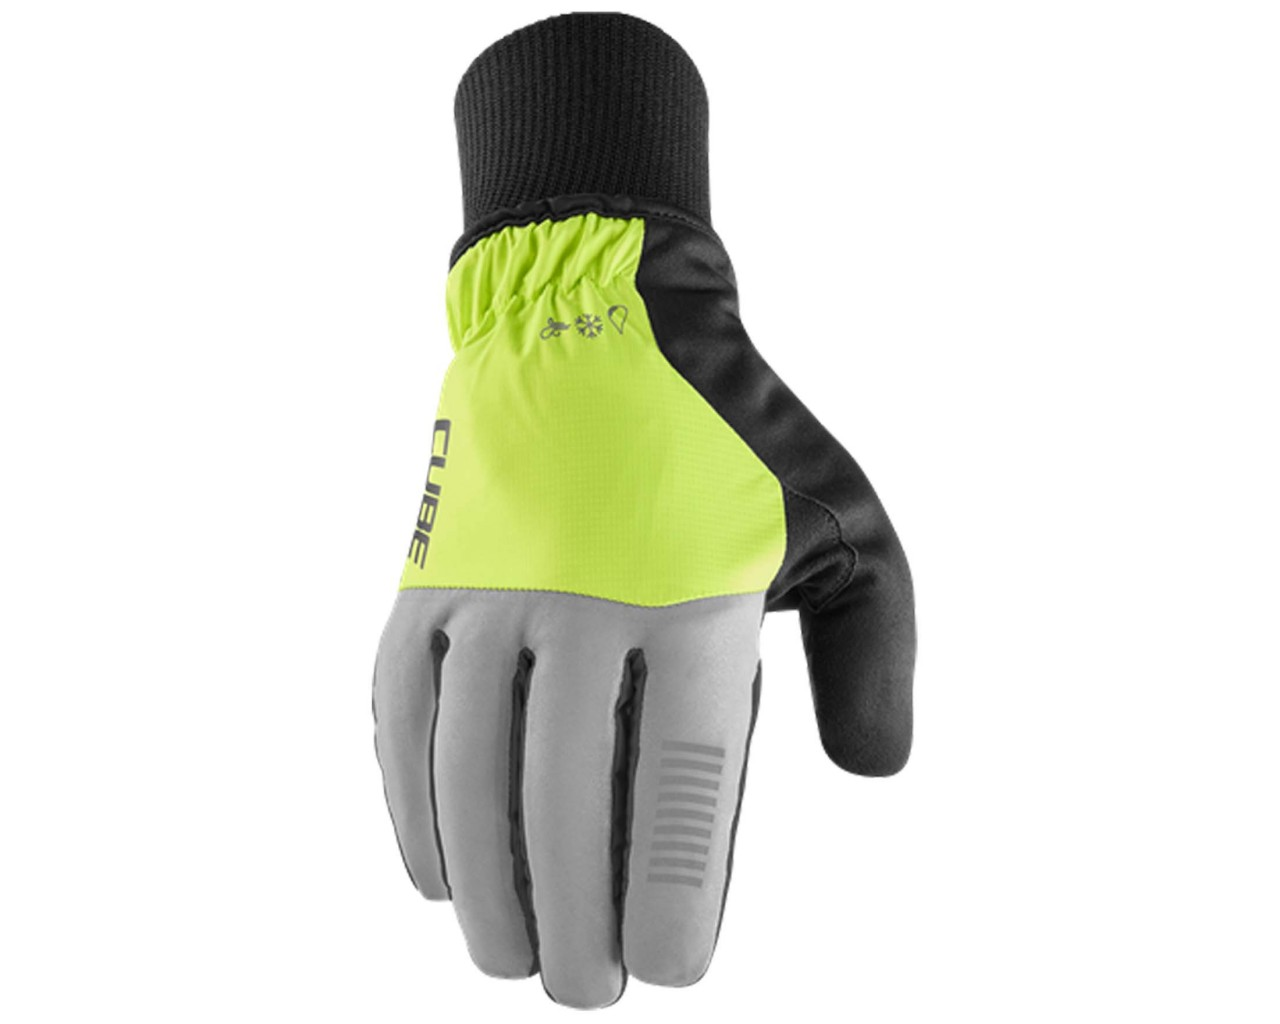 Cube Gloves Winter X NF long finger | grey n yellow